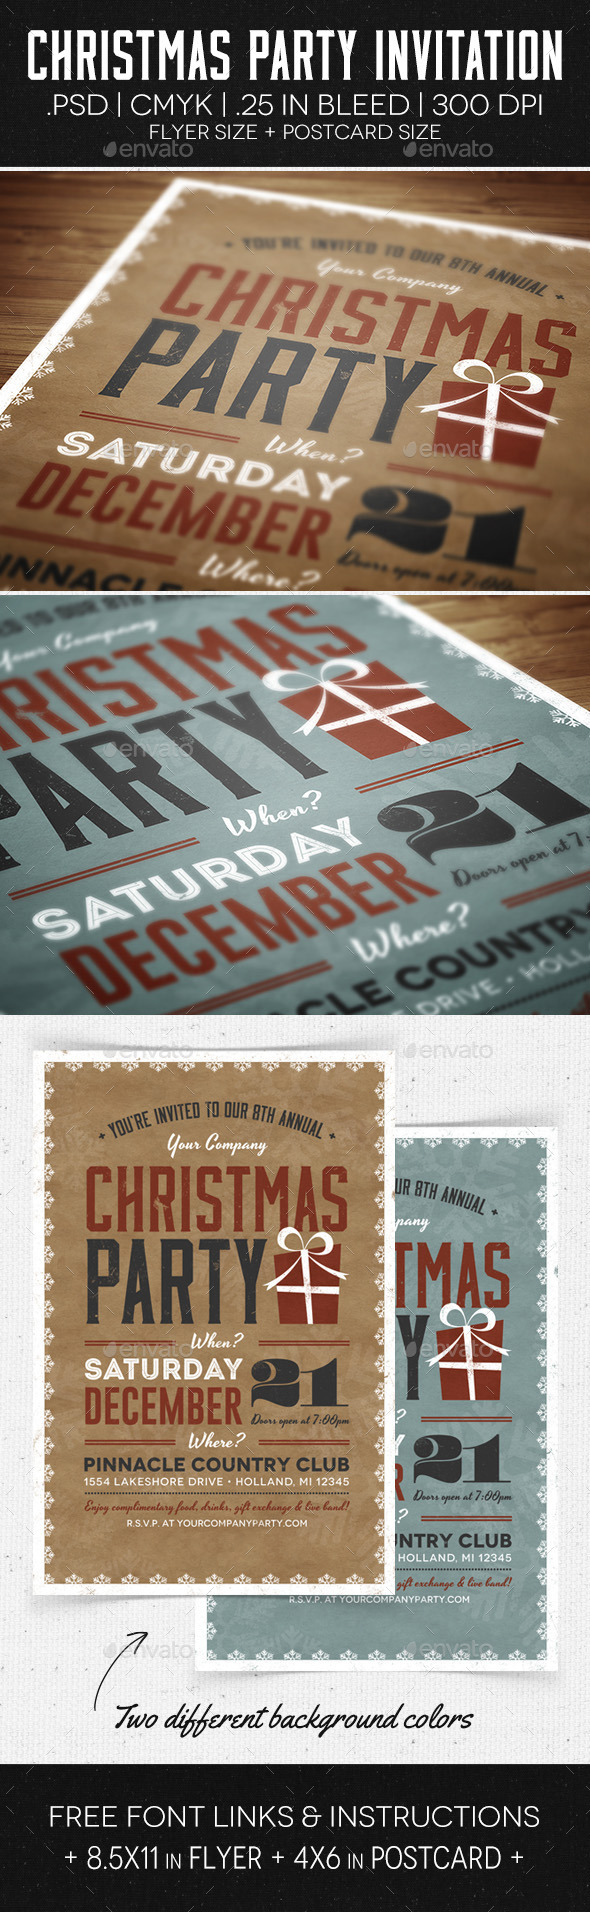 Christmas Party Flyer u0026 Invitation